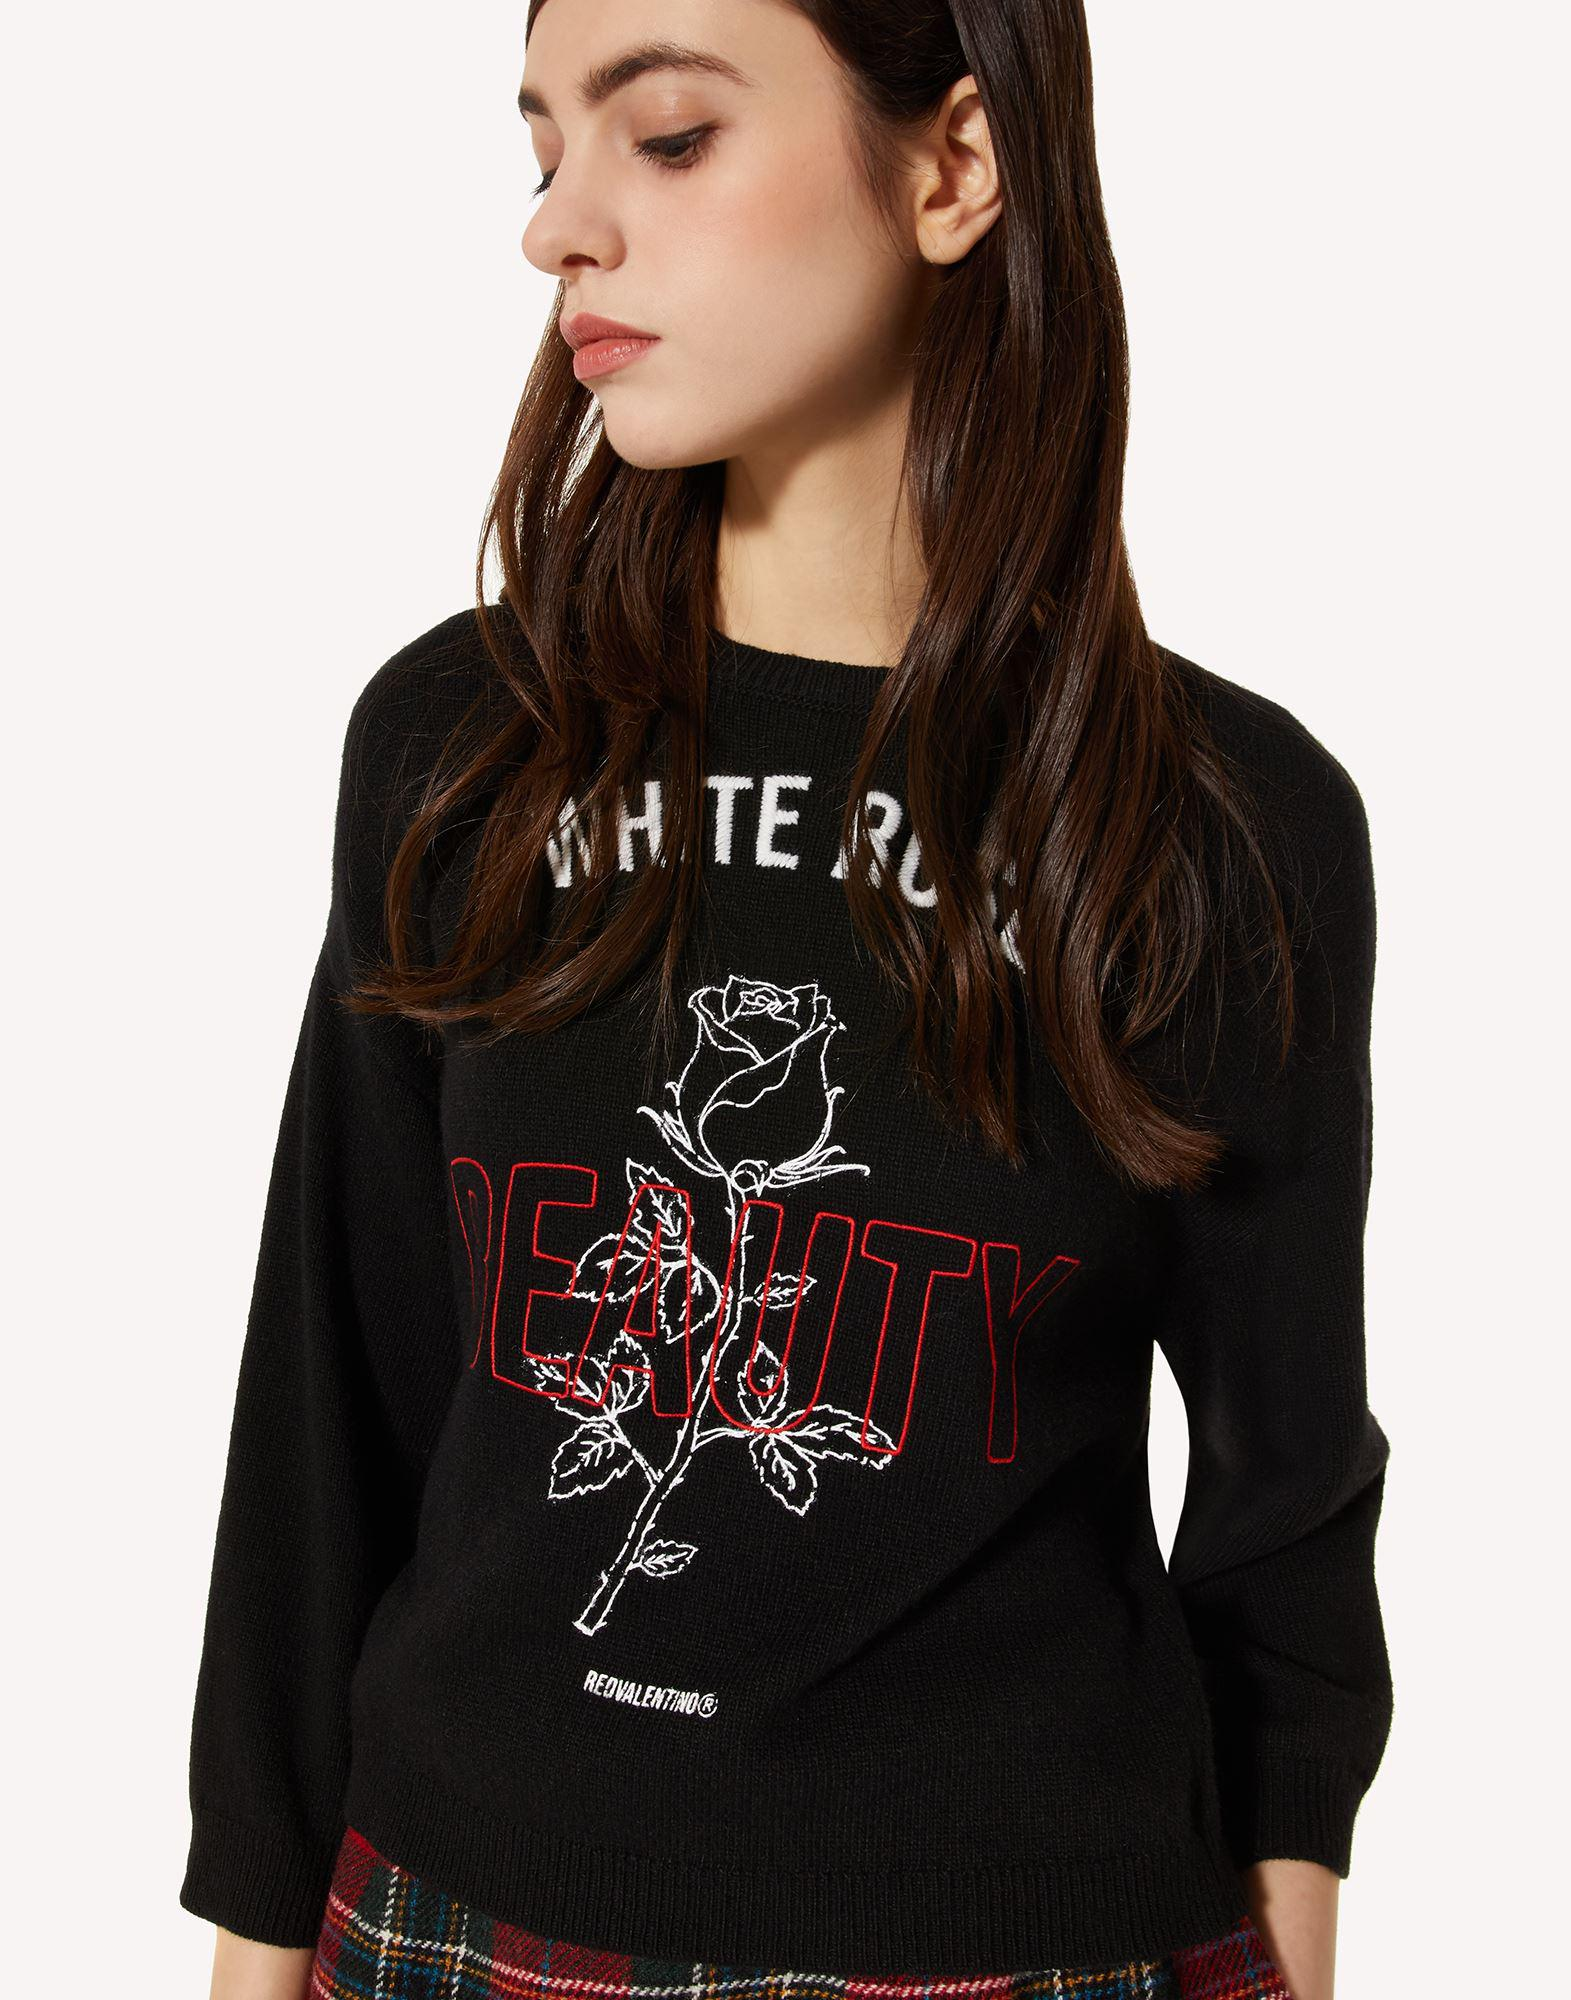 WOOL-BLEND SWEATER WITH ROSE EMBROIDERY 3